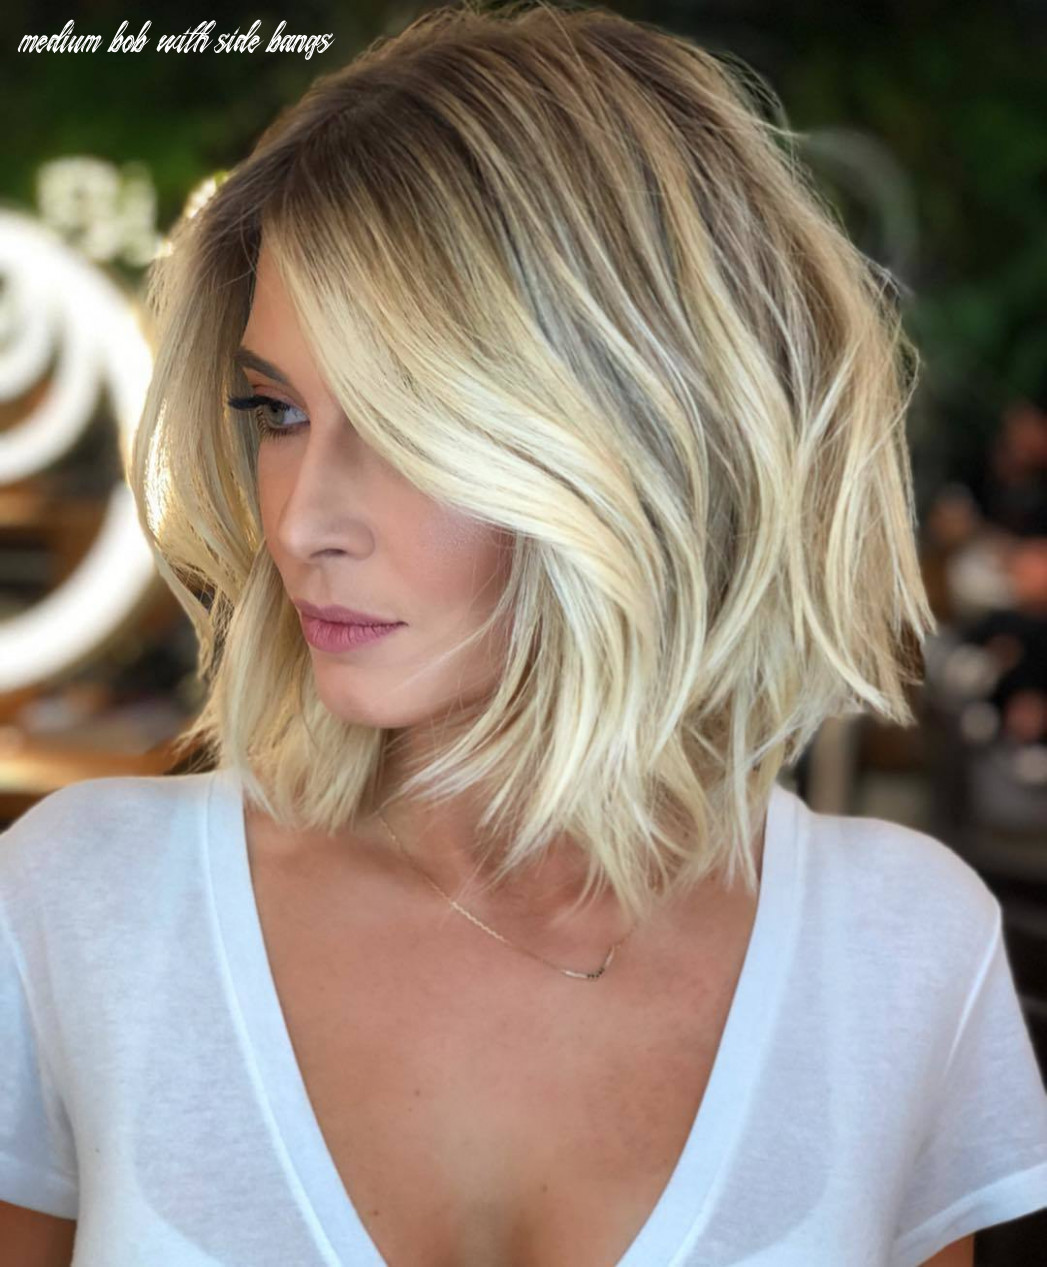 10 best short bobs with bangs haircuts and hairstyles for 10 medium bob with side bangs